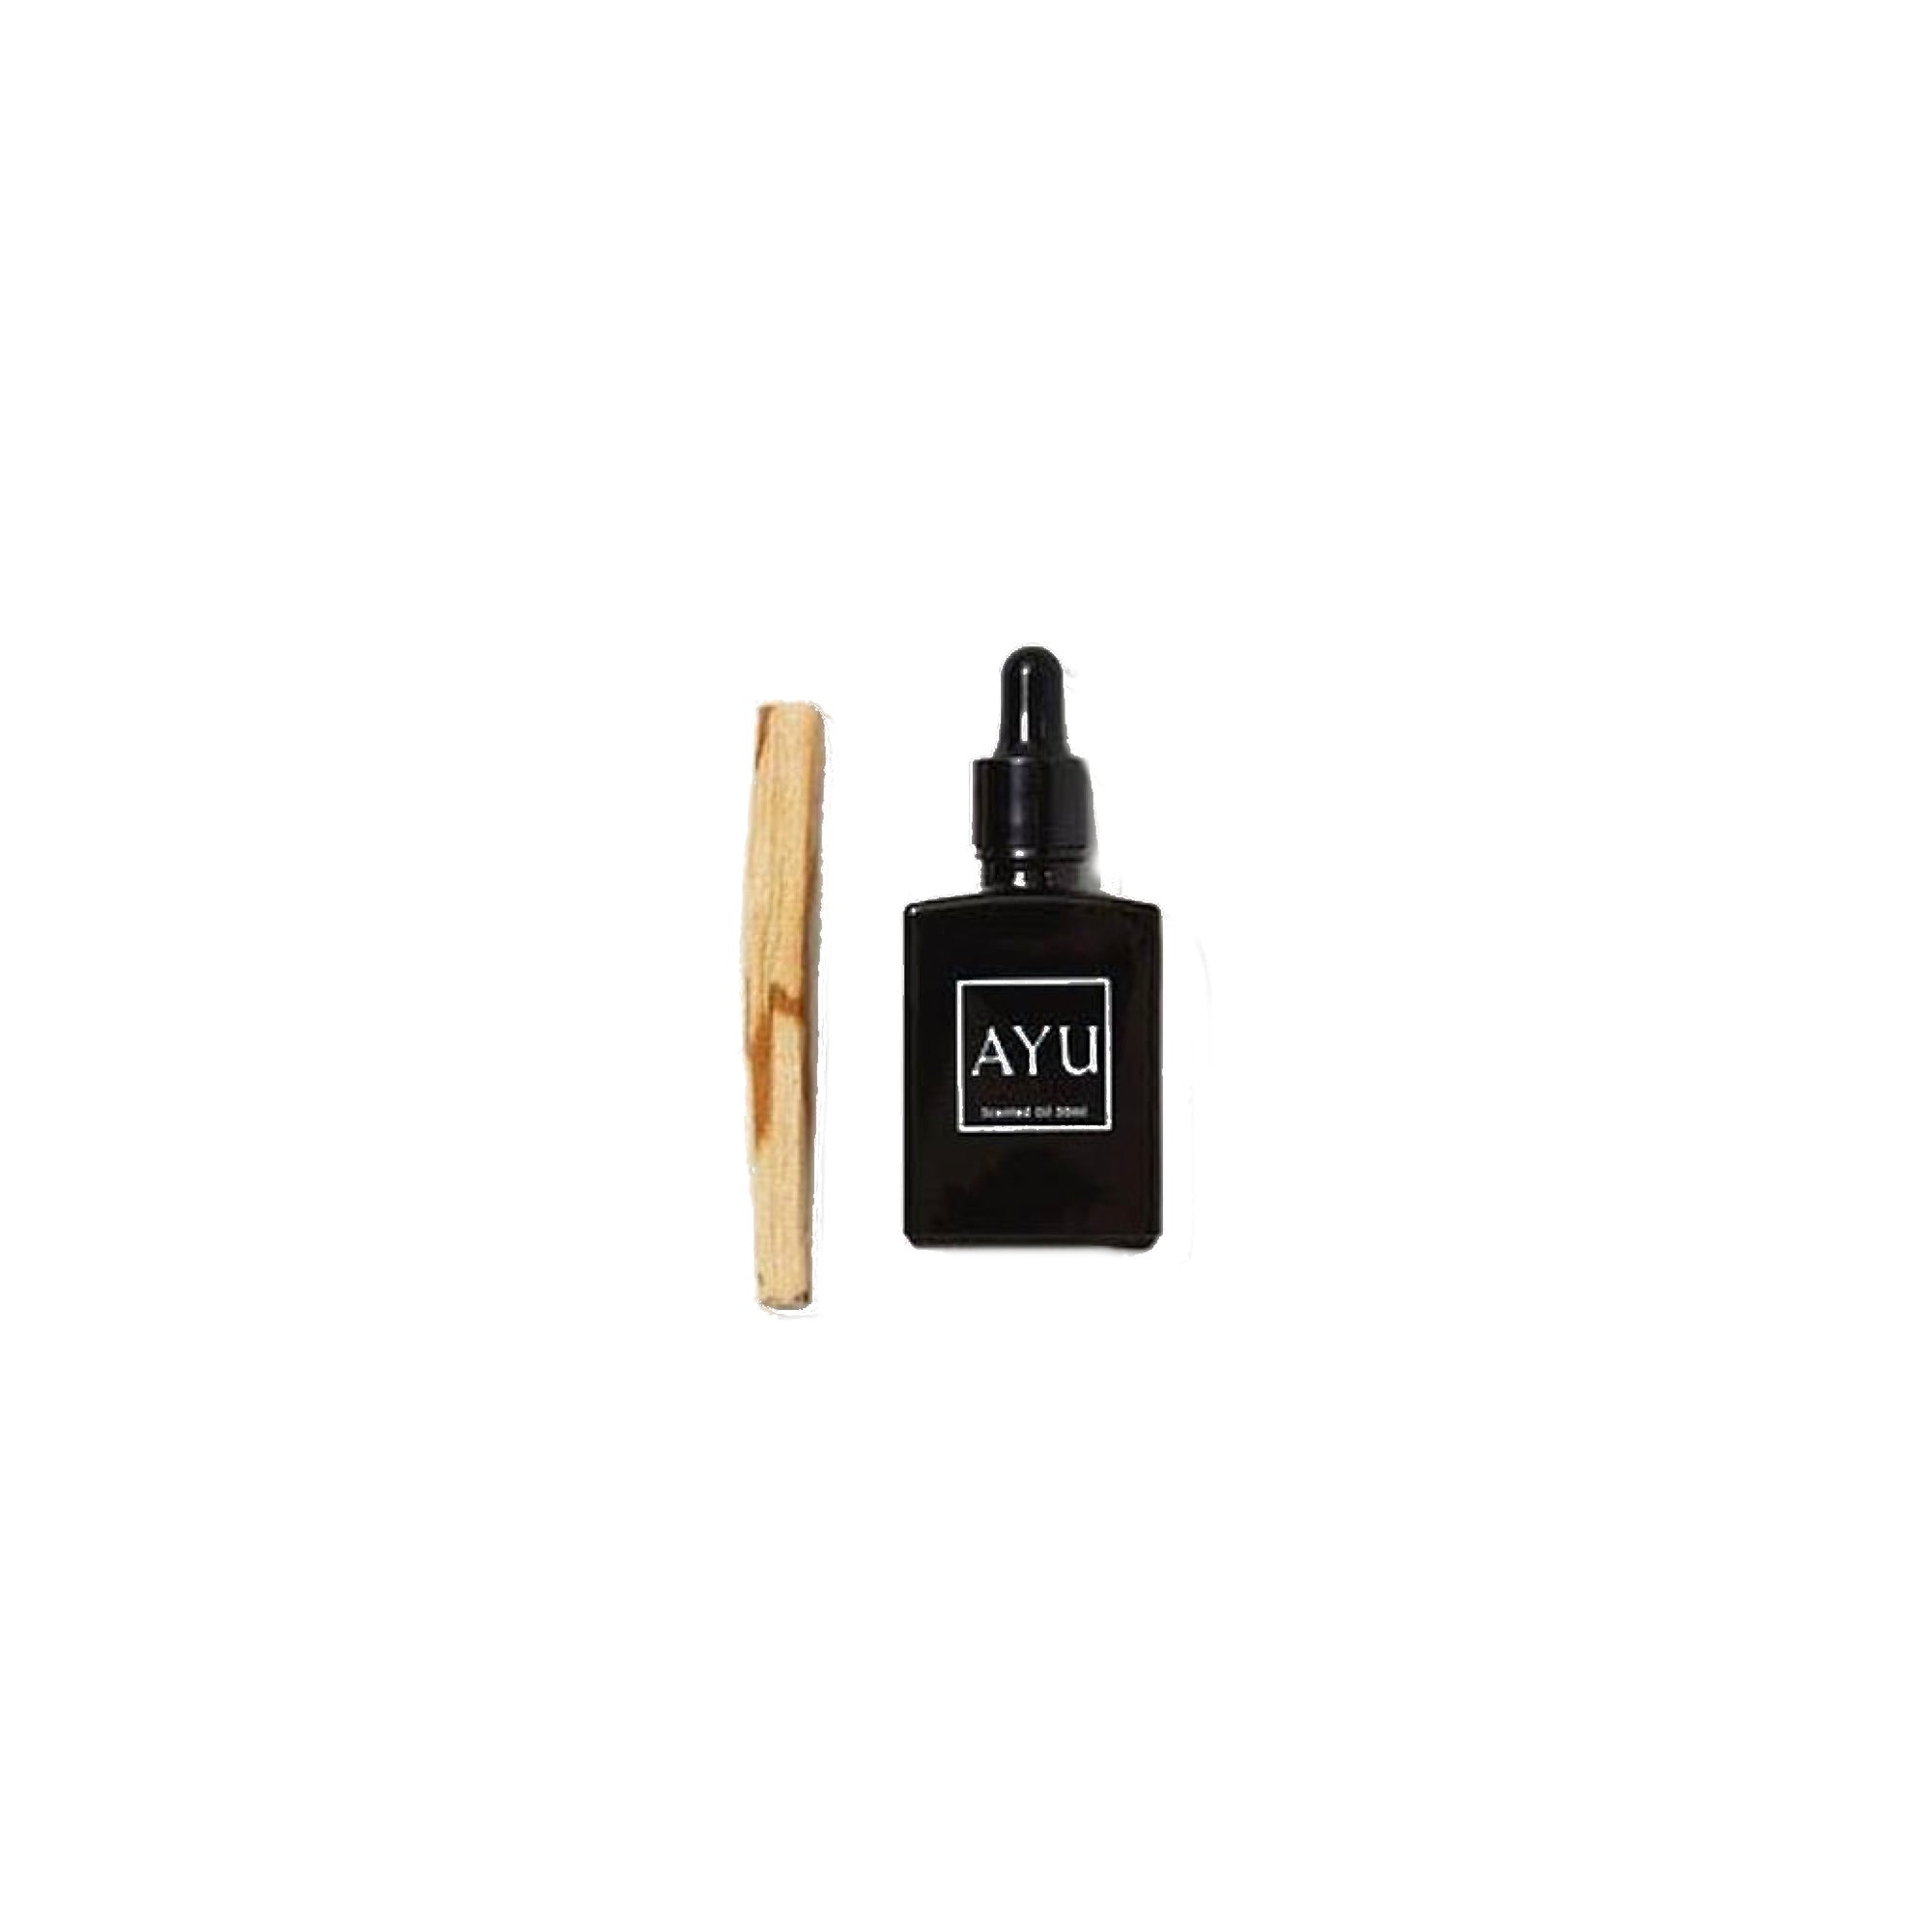 Ayu Scented Oil- WHITE OUDH